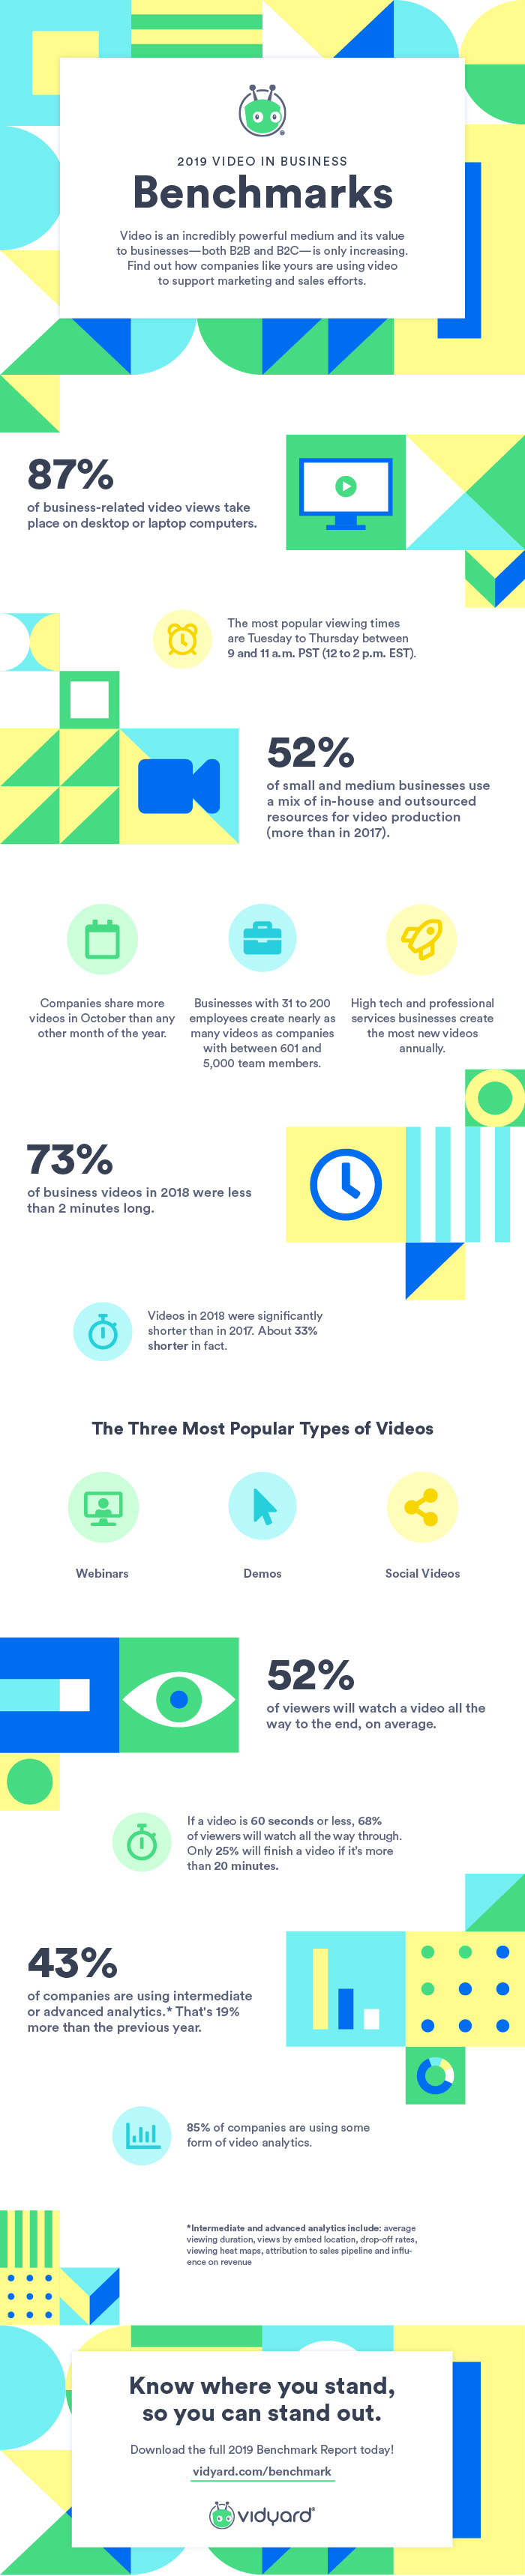 2019-video-in-business-benchmark-report-infographic